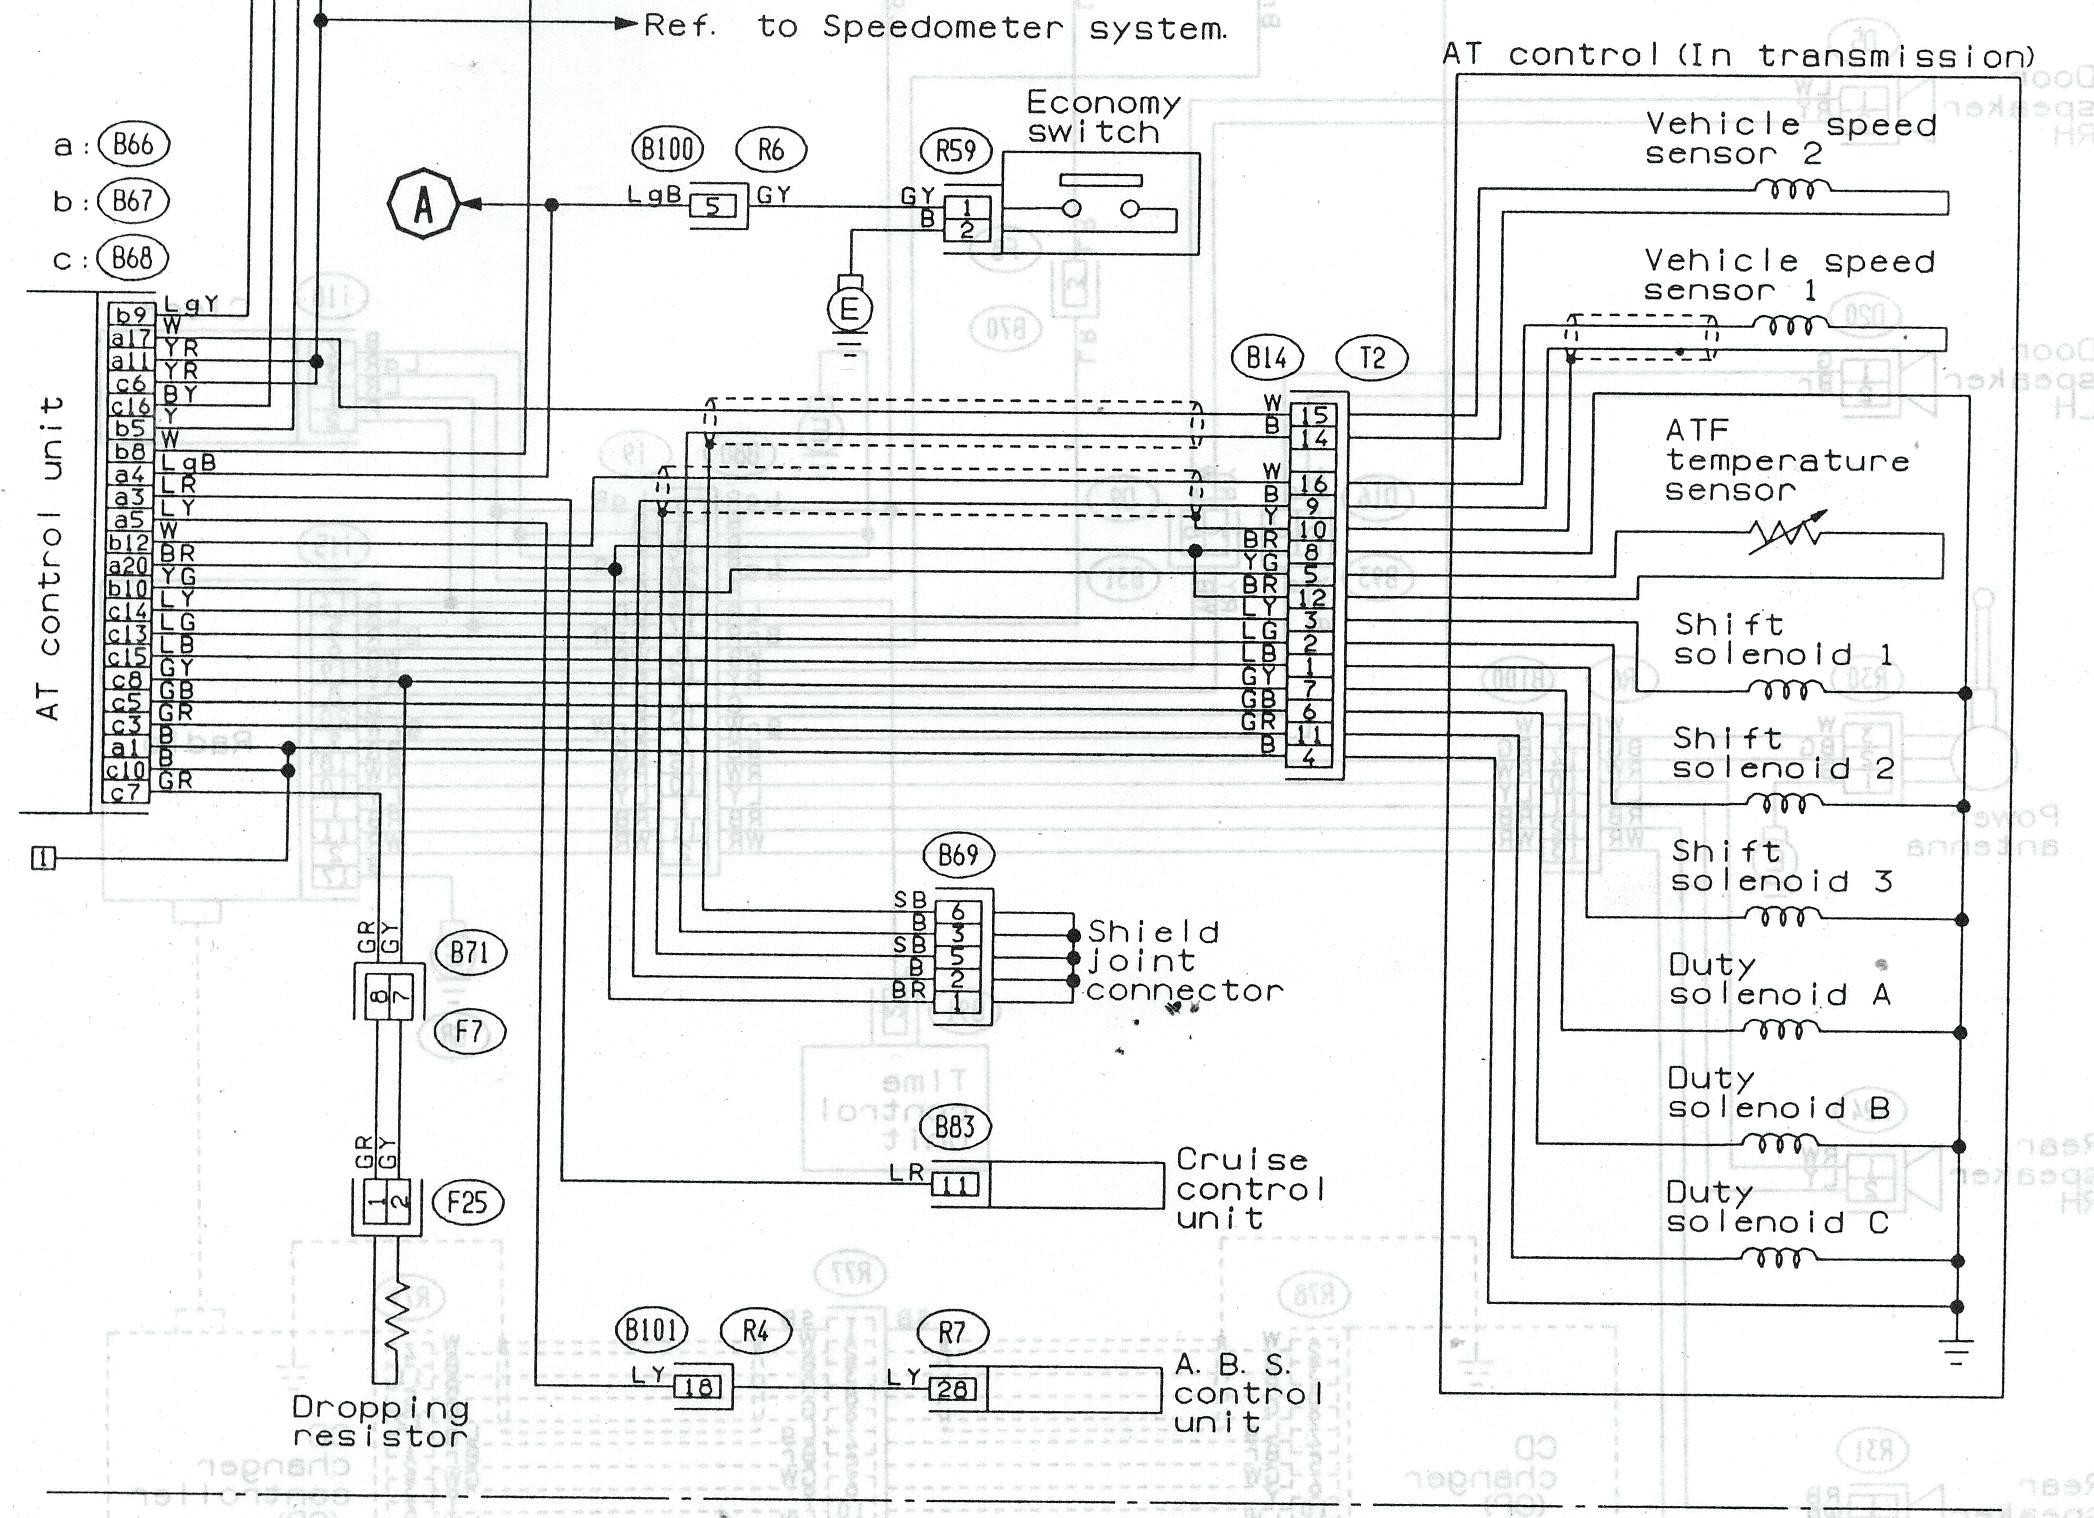 Subaru Legacy Engine Diagram Subaru Legacy Engine Diagram Wiring For Ceiling Fan Light Pull Of Subaru Legacy Engine Diagram on Subaru Baja Wiring Diagram